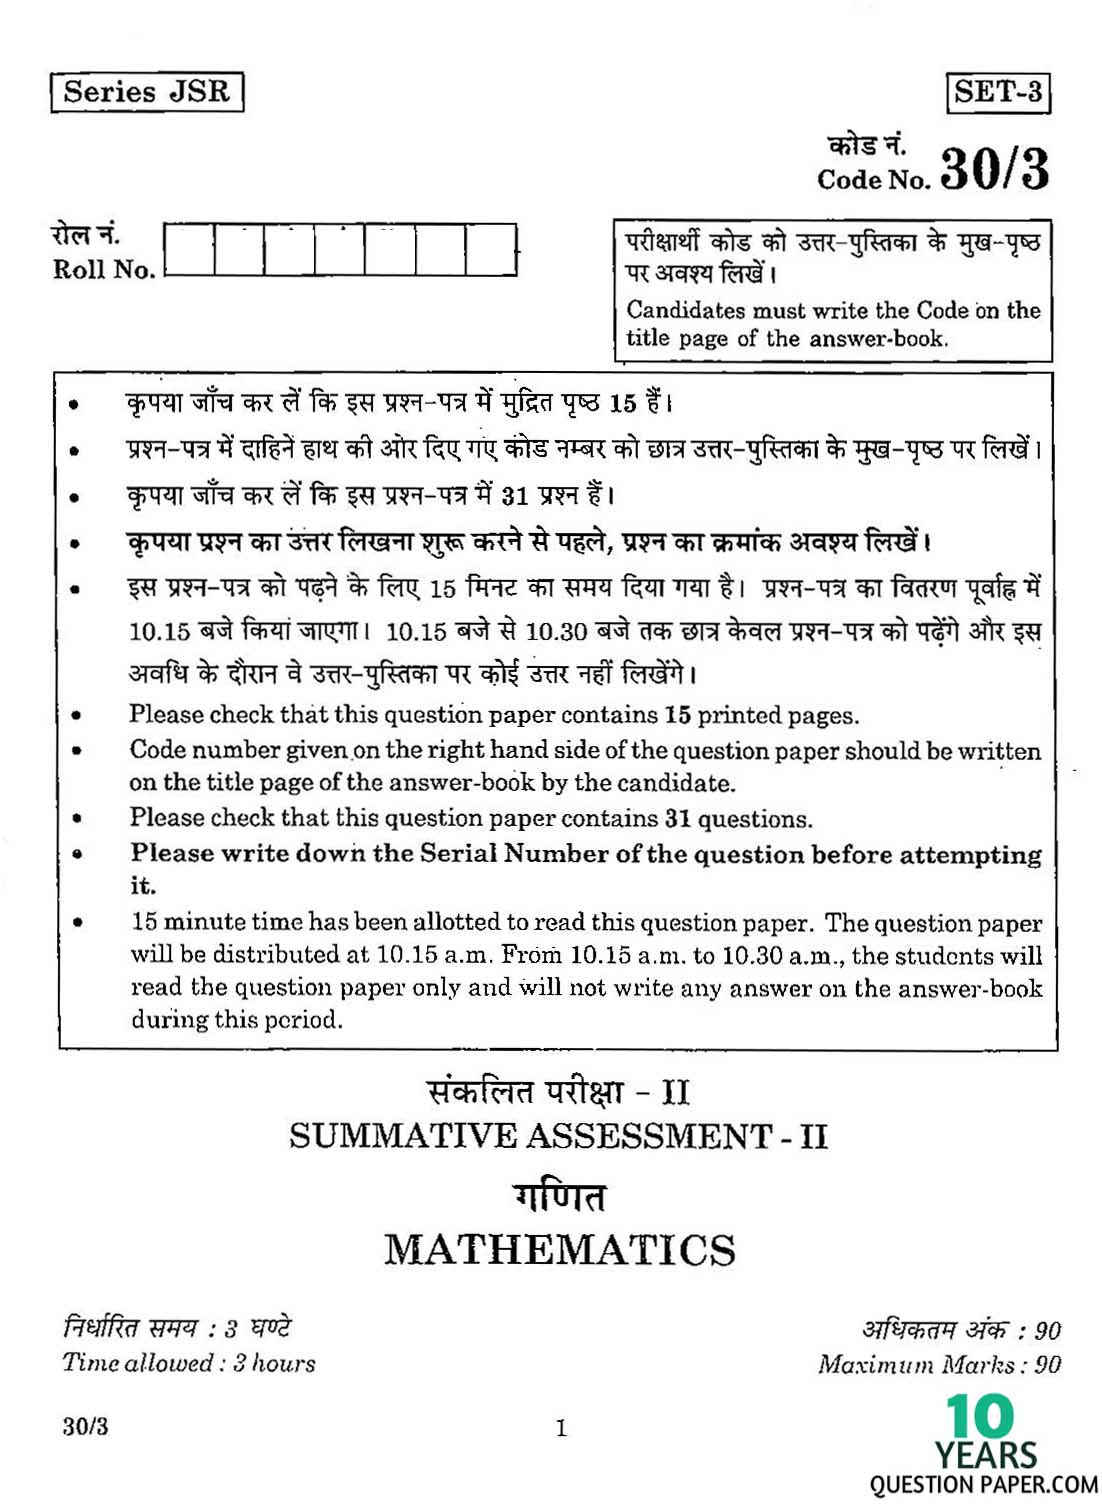 Cbse Mathematics Question Paper For Class 10